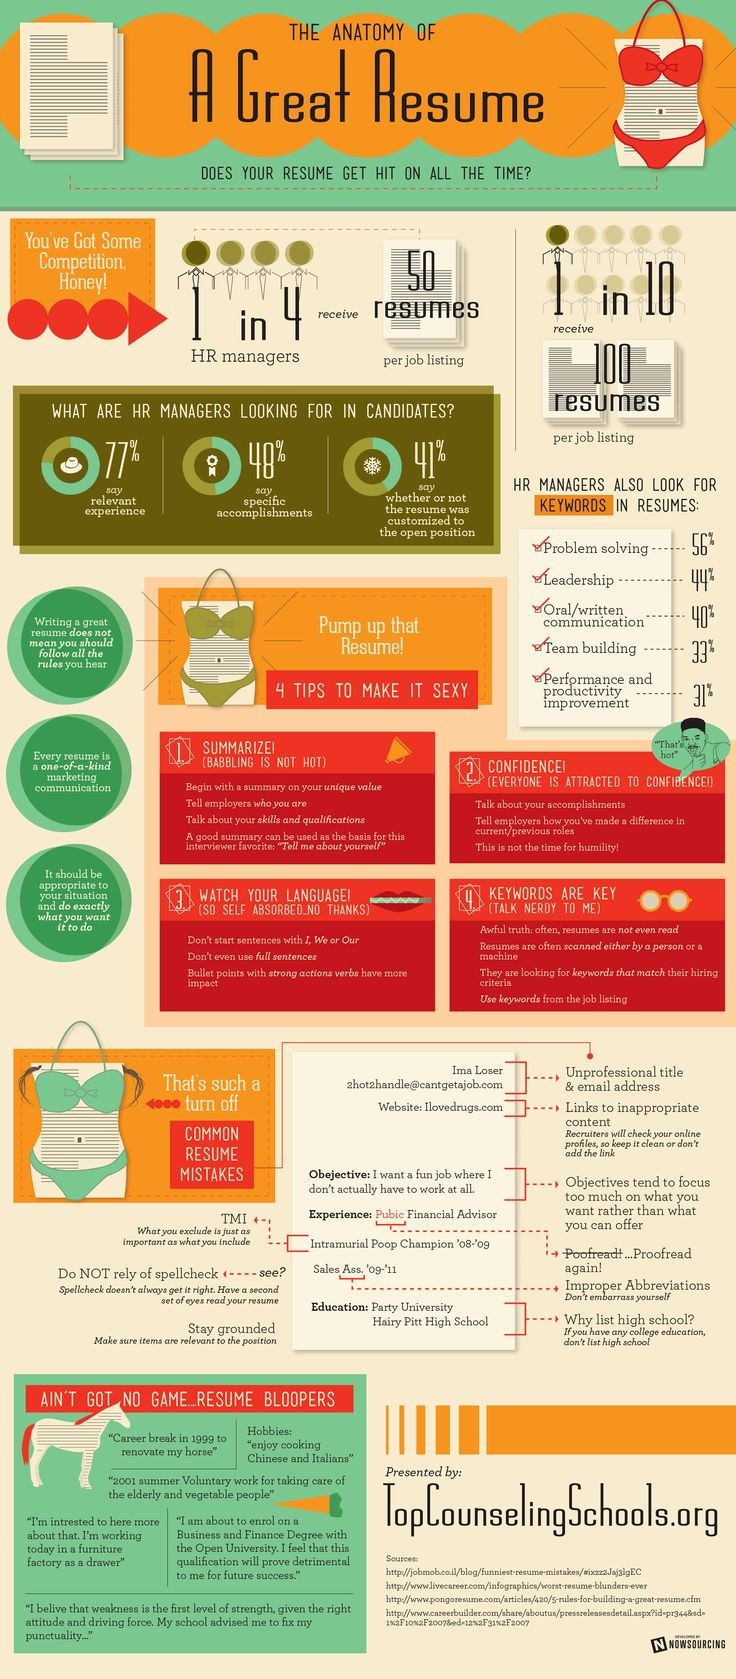 Anatomy of a Great Resume This Infographic